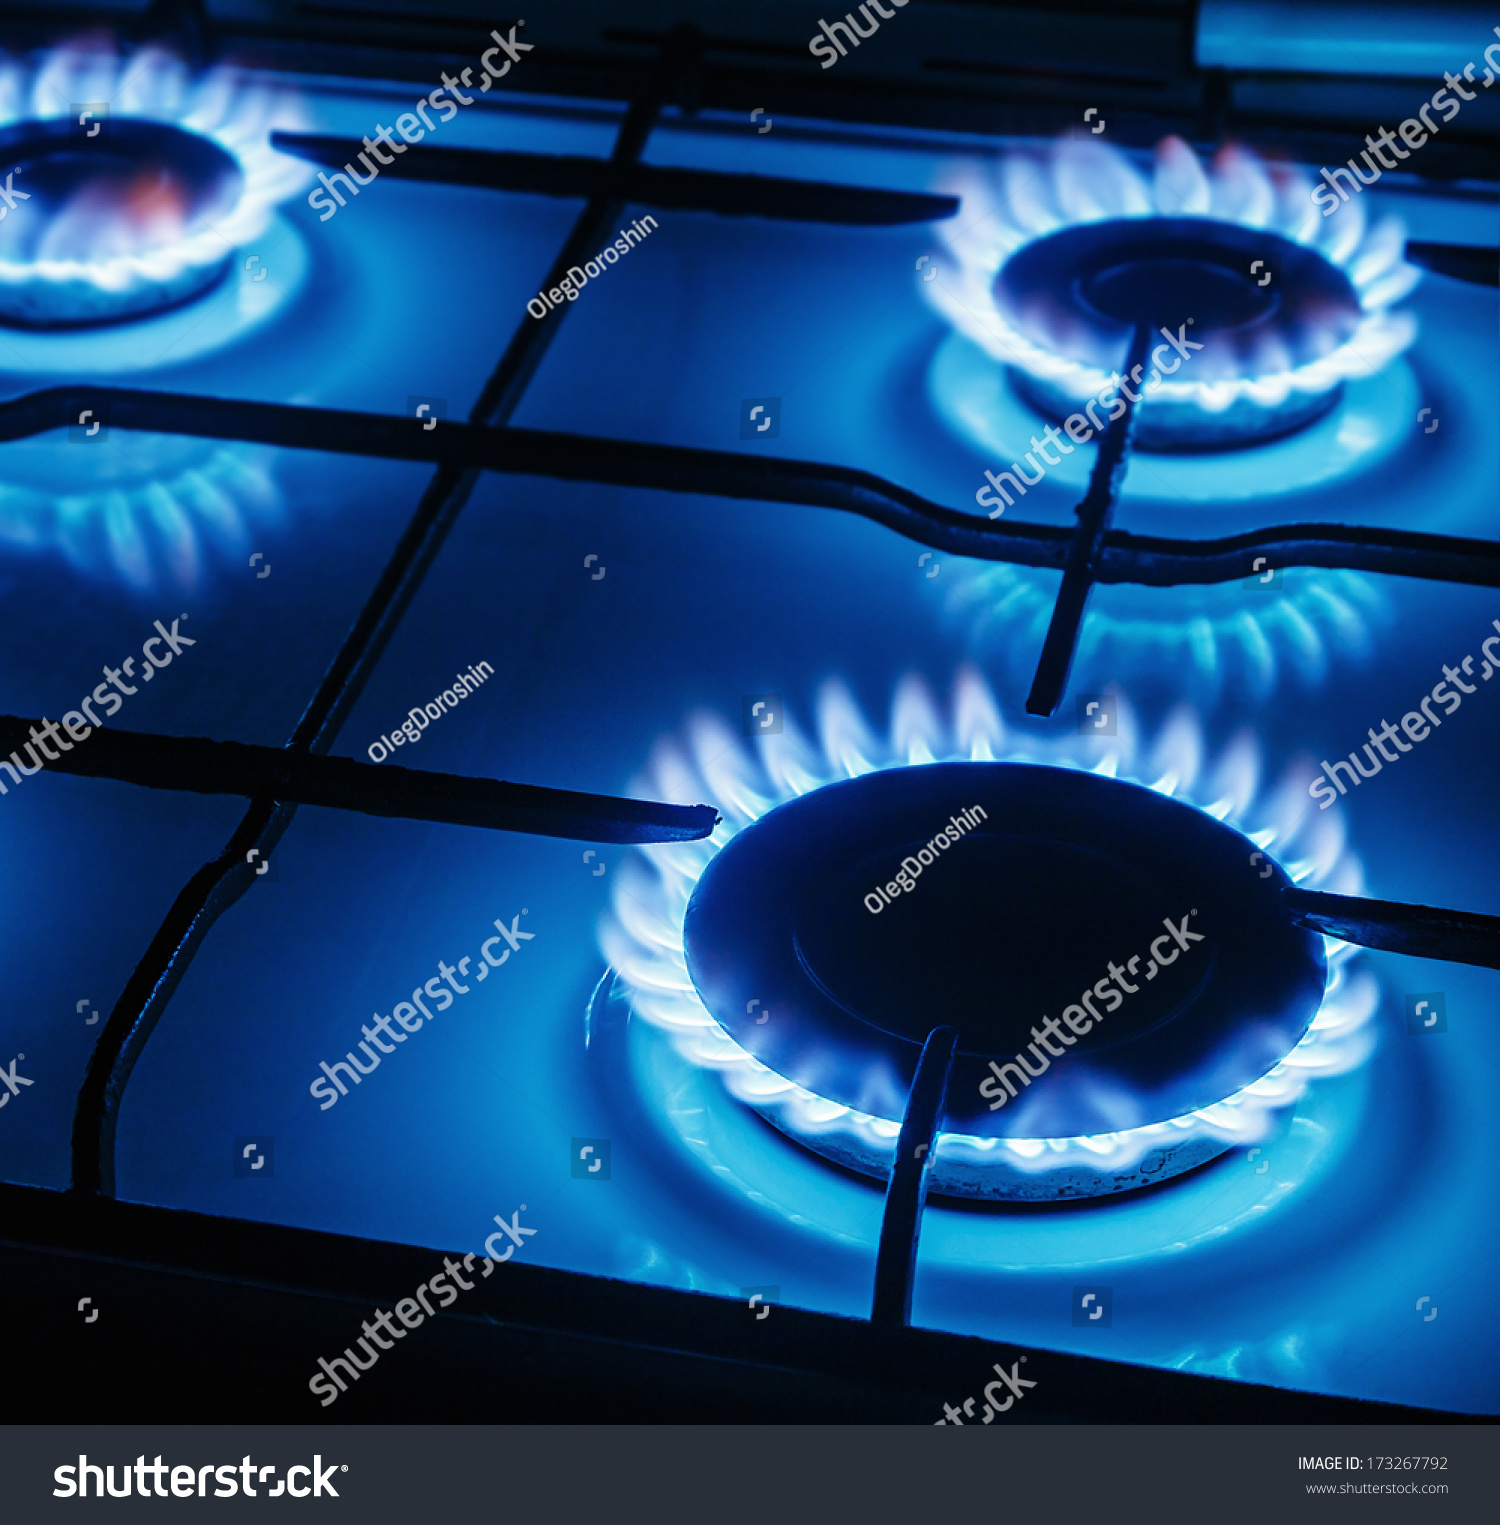 Blue Flame Kitchen: Blue Flames Of Gas Burning From A Kitchen Gas Stove. Focus